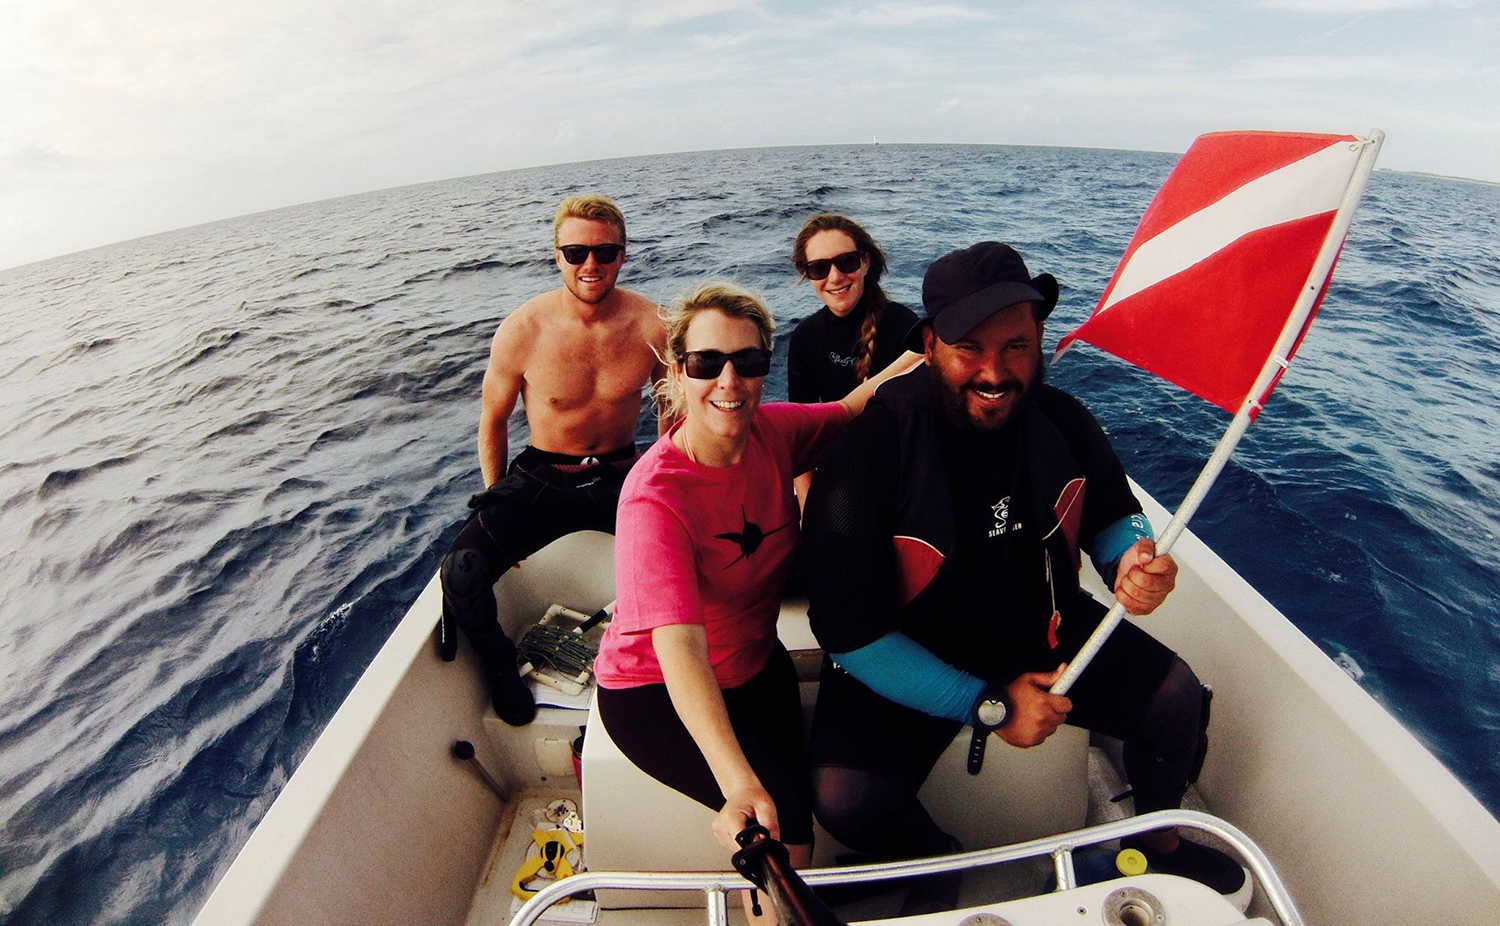 The South Eleuthera AGRRA team. (Left to right) Drew Hitchner (CEI), Hayley Jo Carr (Stuart's Cove), Candice Brittain (CEI), Lindy Knowles (Bahamas National Trust) (Photo by Hayley Jo Carr)